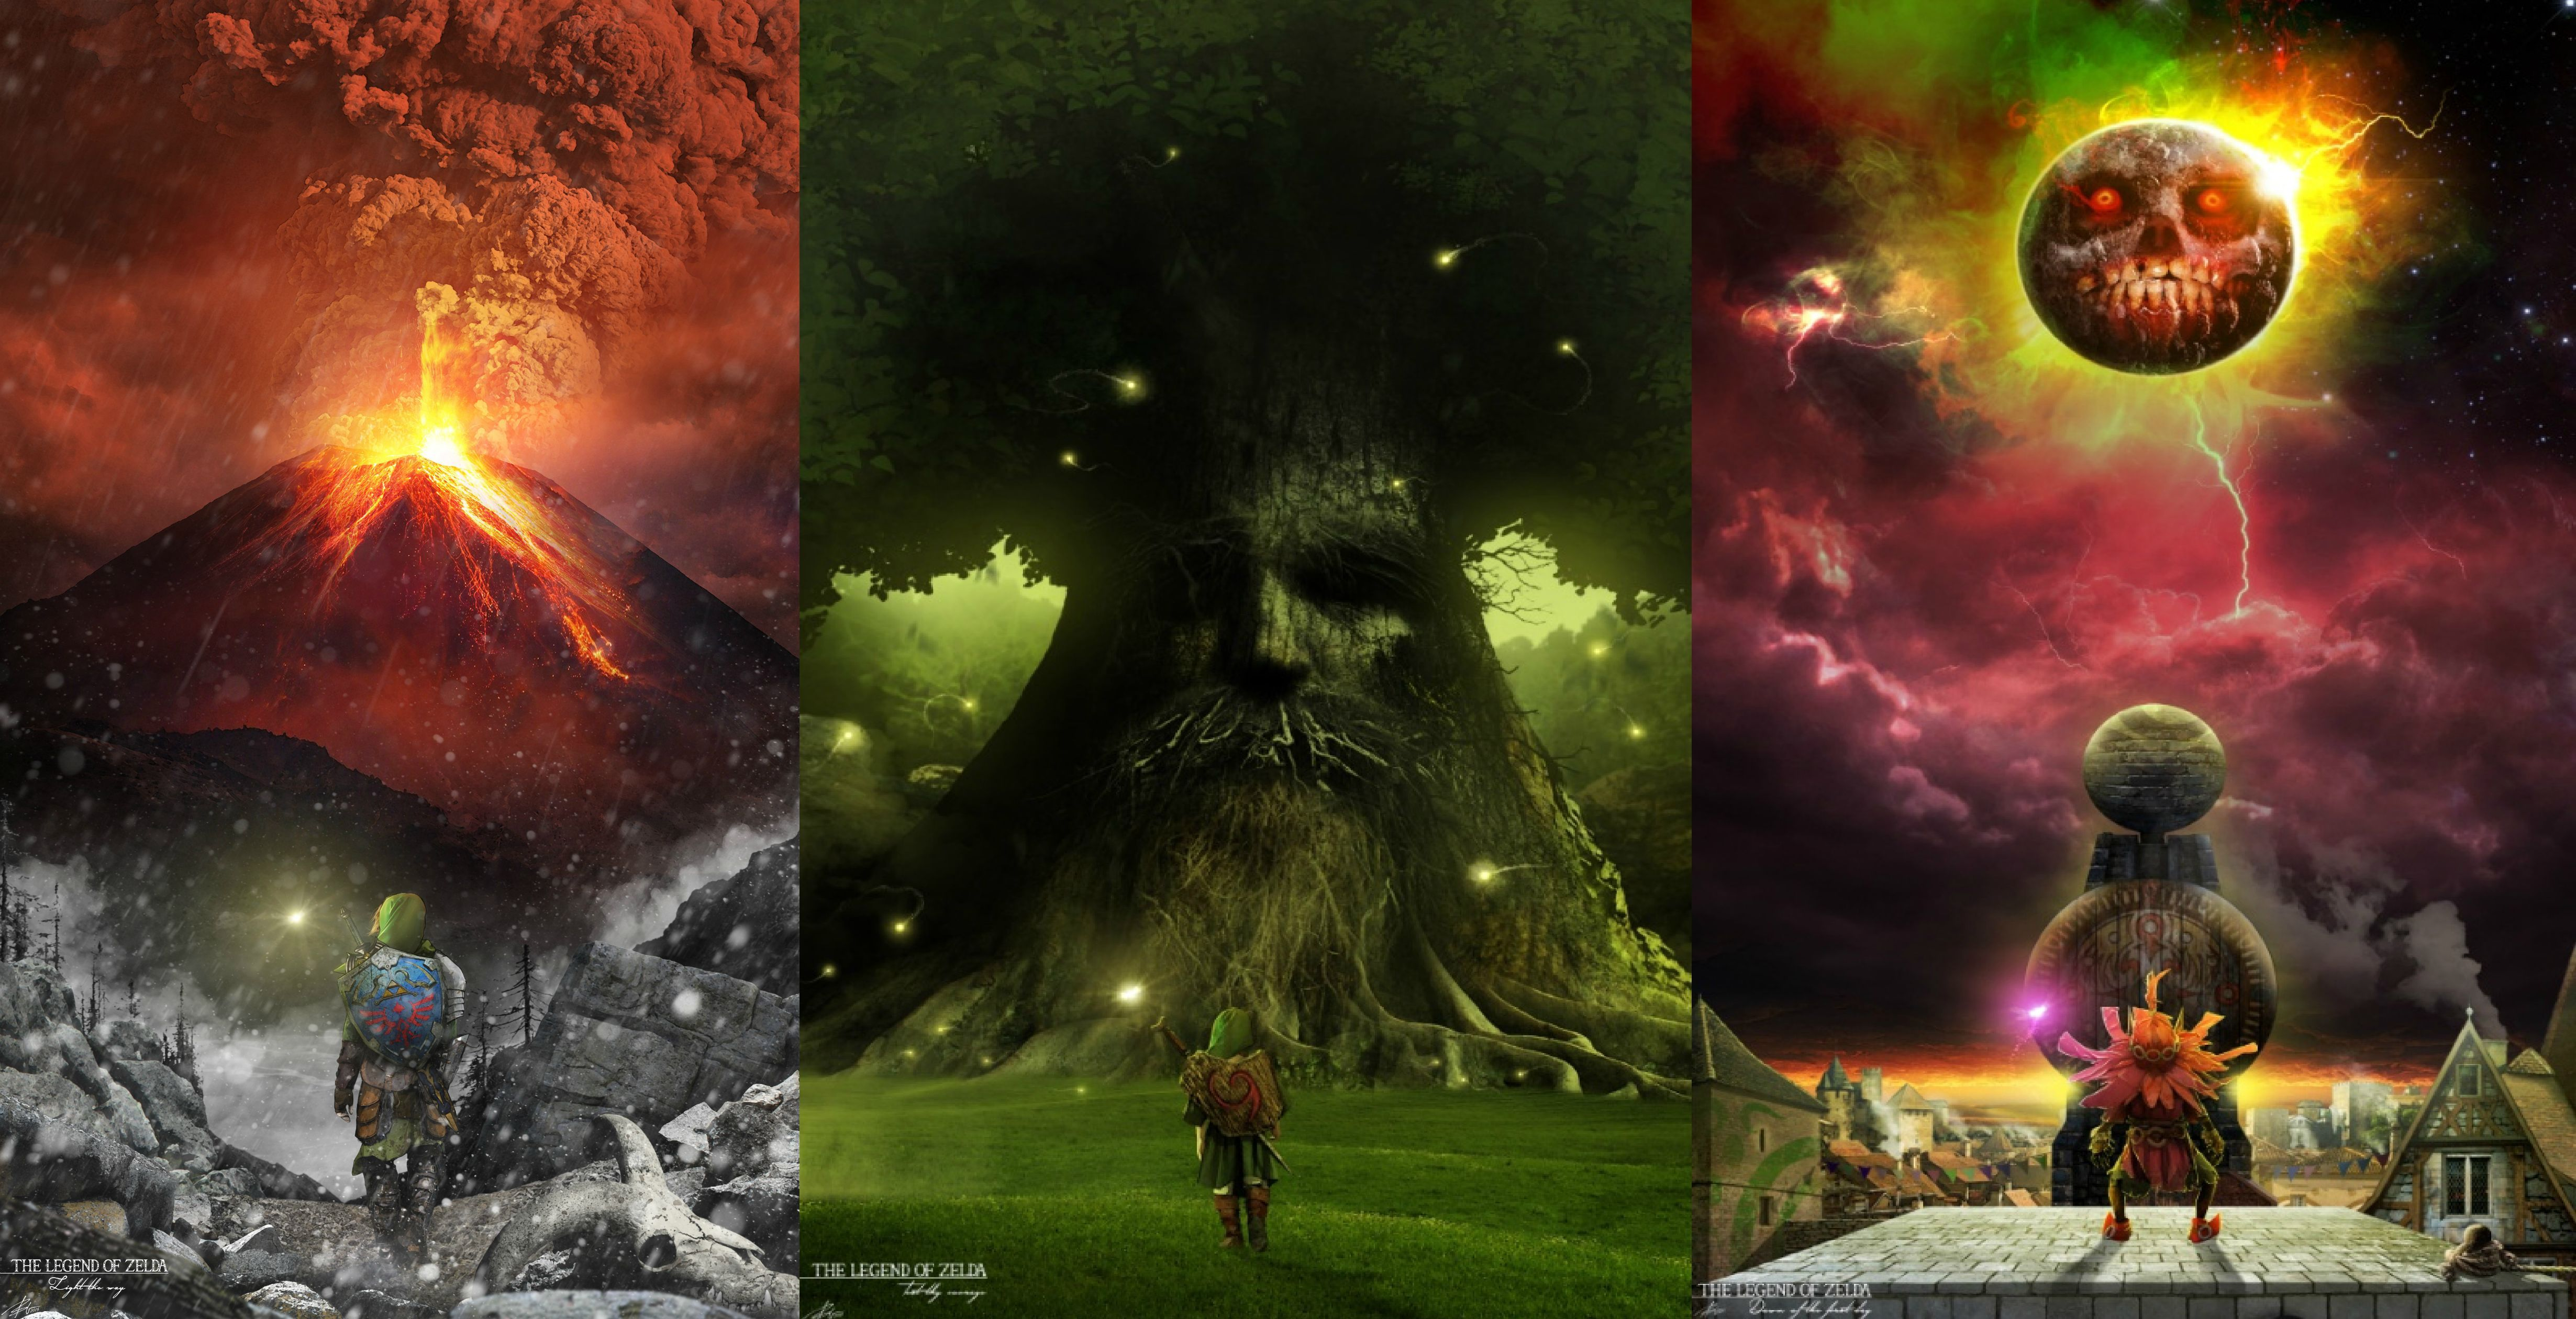 Awesome Legend of Zelda Wallpapers   Top Awesome Legend of 4920x2520